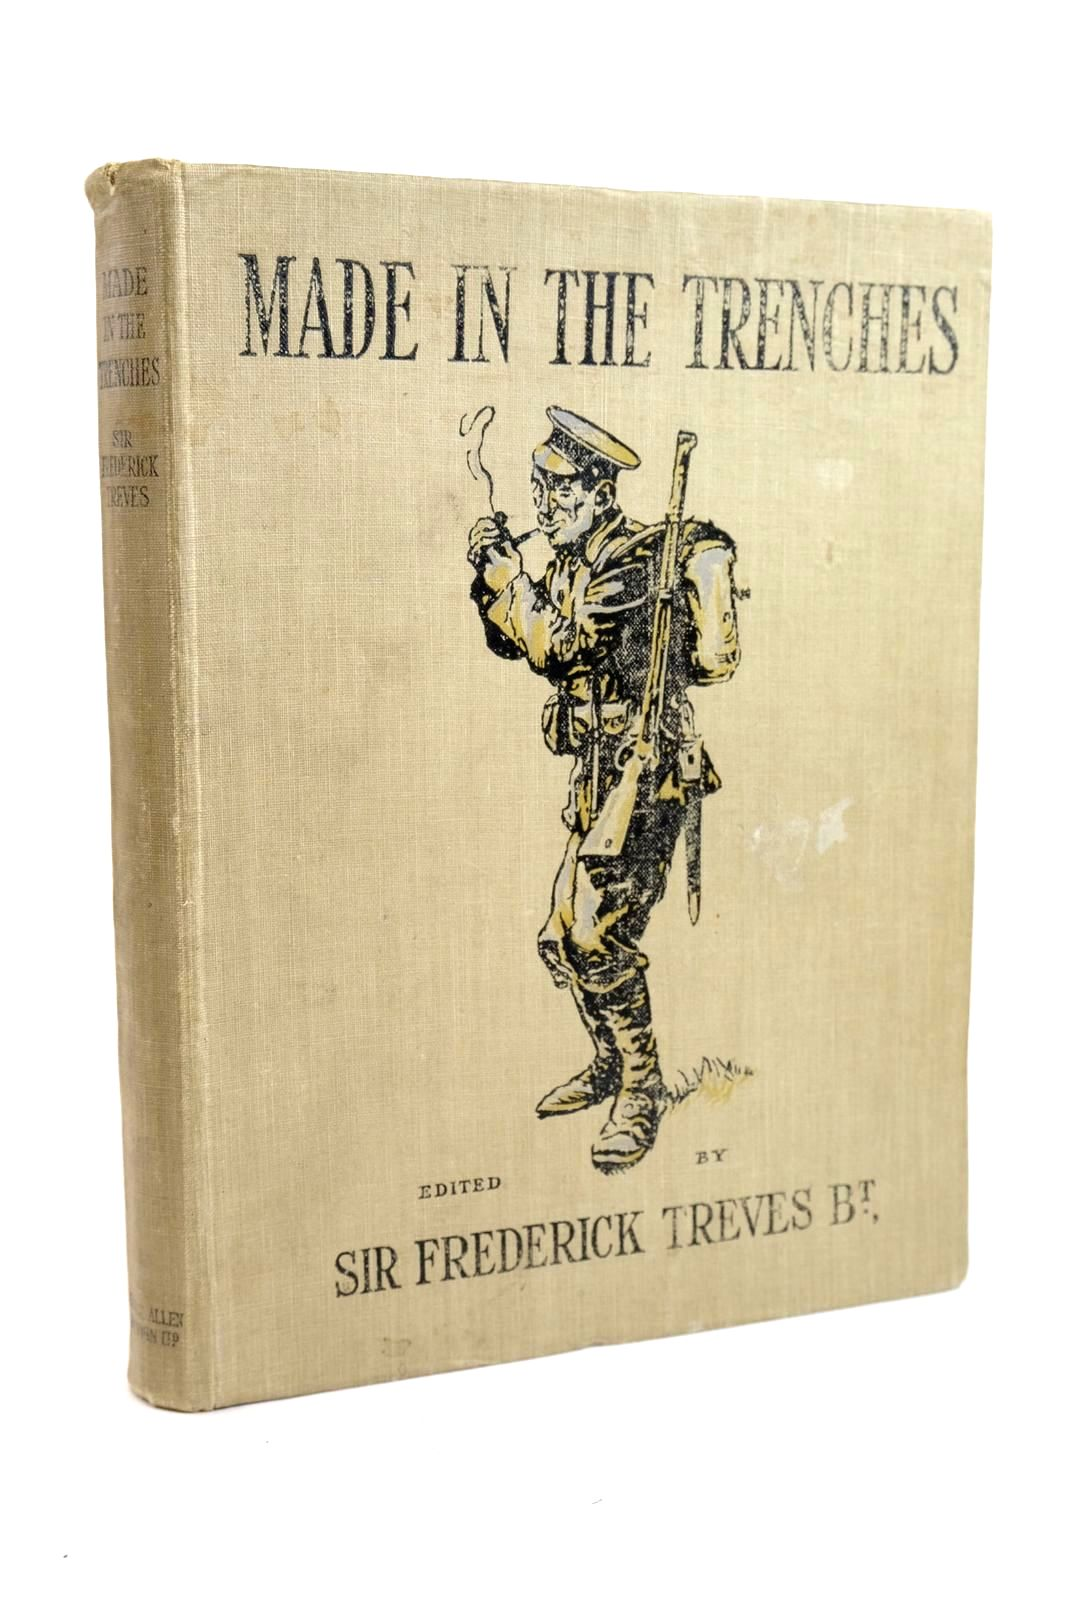 Photo of MADE IN THE TRENCHES written by Treves, Sir Frederick Goodchild, George illustrated by Cowles, Denis Robinson, H.A. Elcock, Howard K. et al., published by George Allen & Unwin Ltd. (STOCK CODE: 1320162)  for sale by Stella & Rose's Books